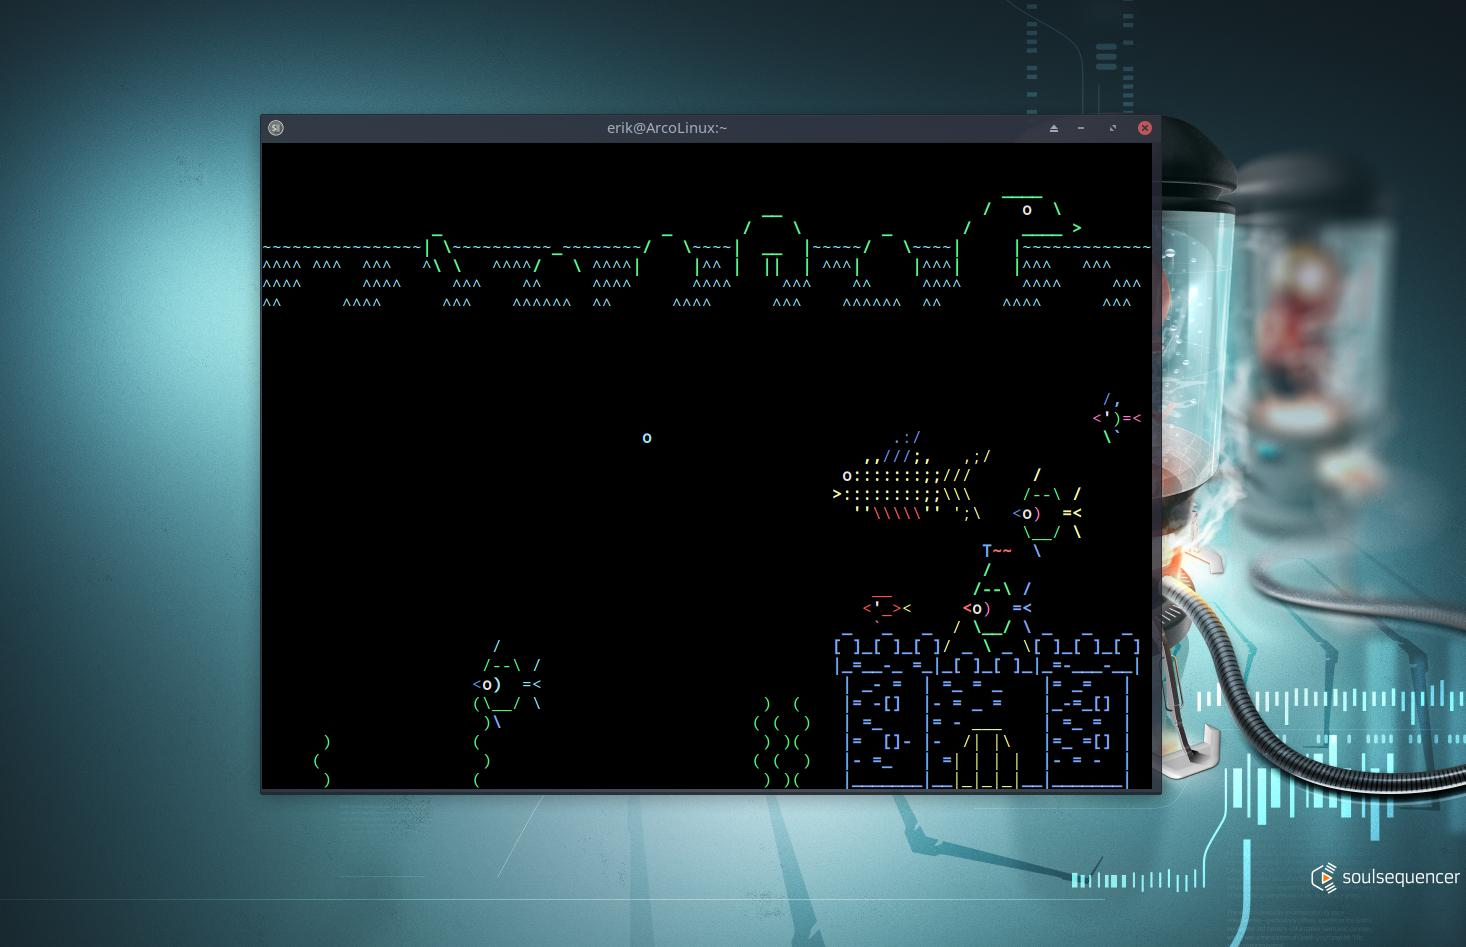 installing fun stuff for the terminal on ArcoLinux